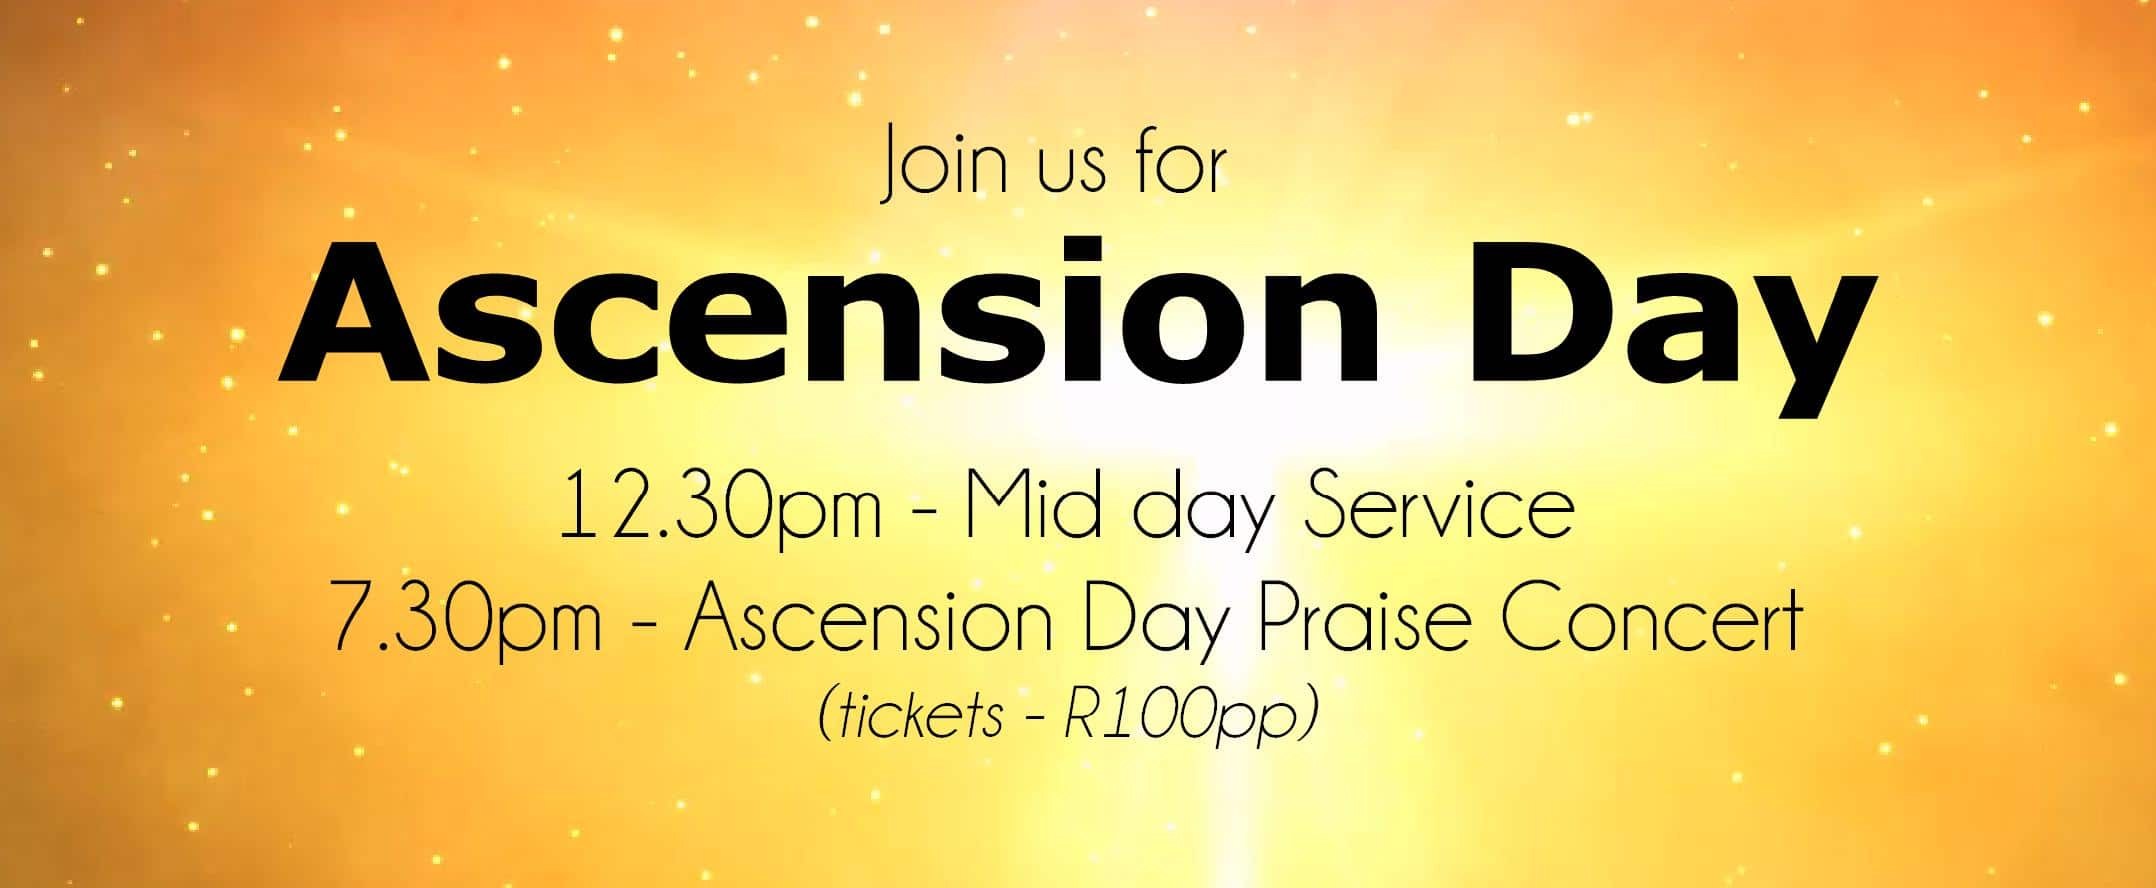 Happy Ascension Day 2017 Prayers Photo